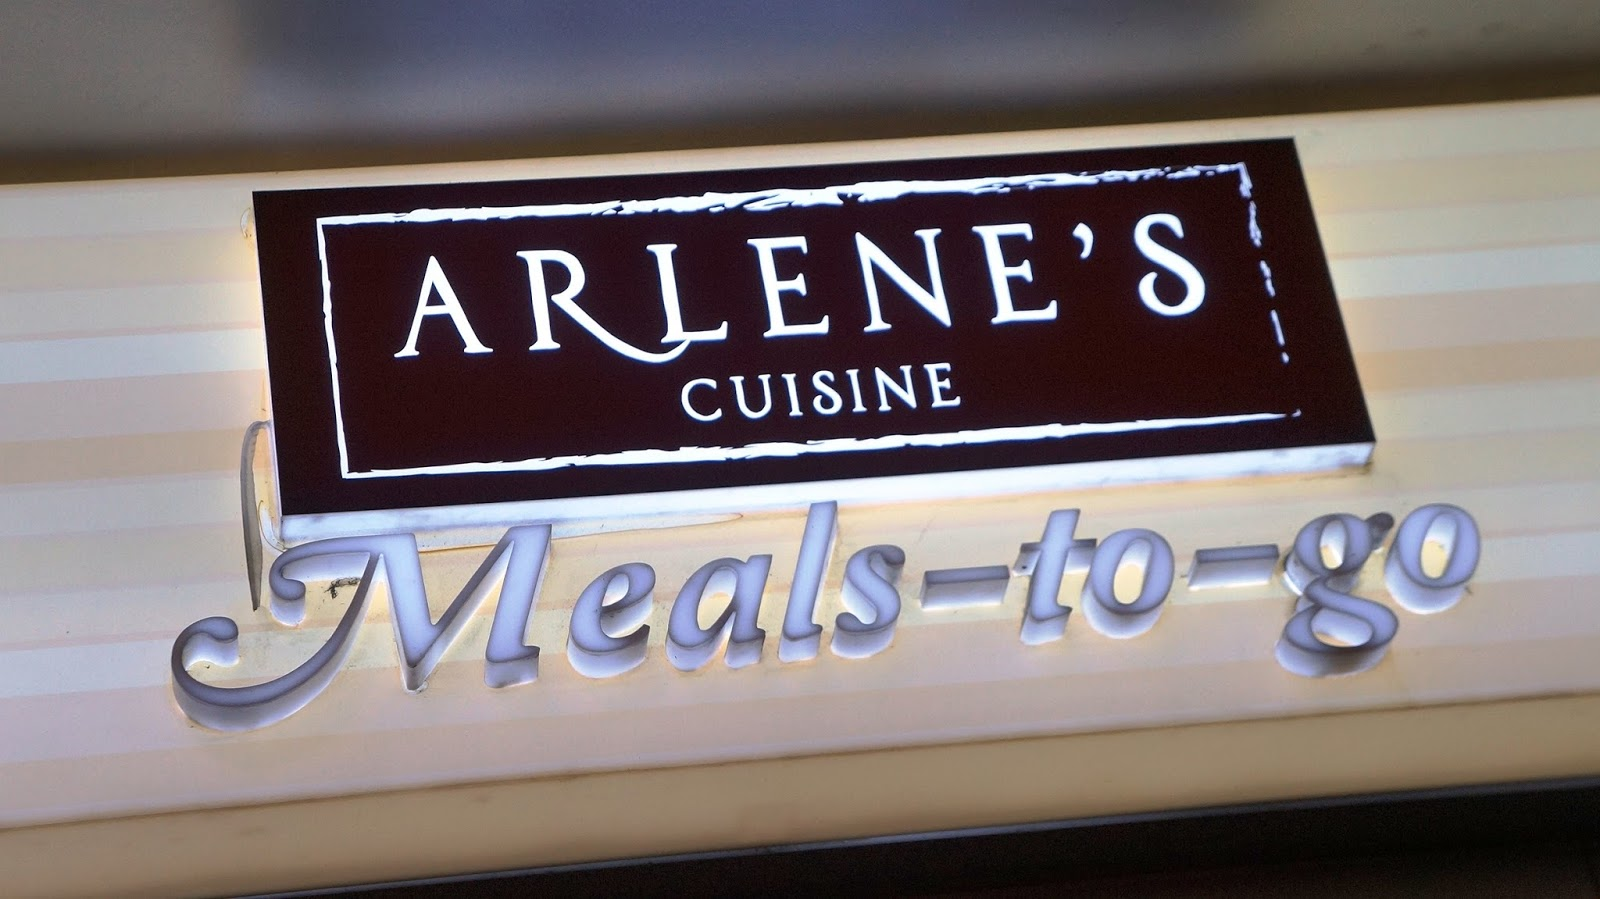 meals to go arlene 39 s cuisine knows the trend of the near